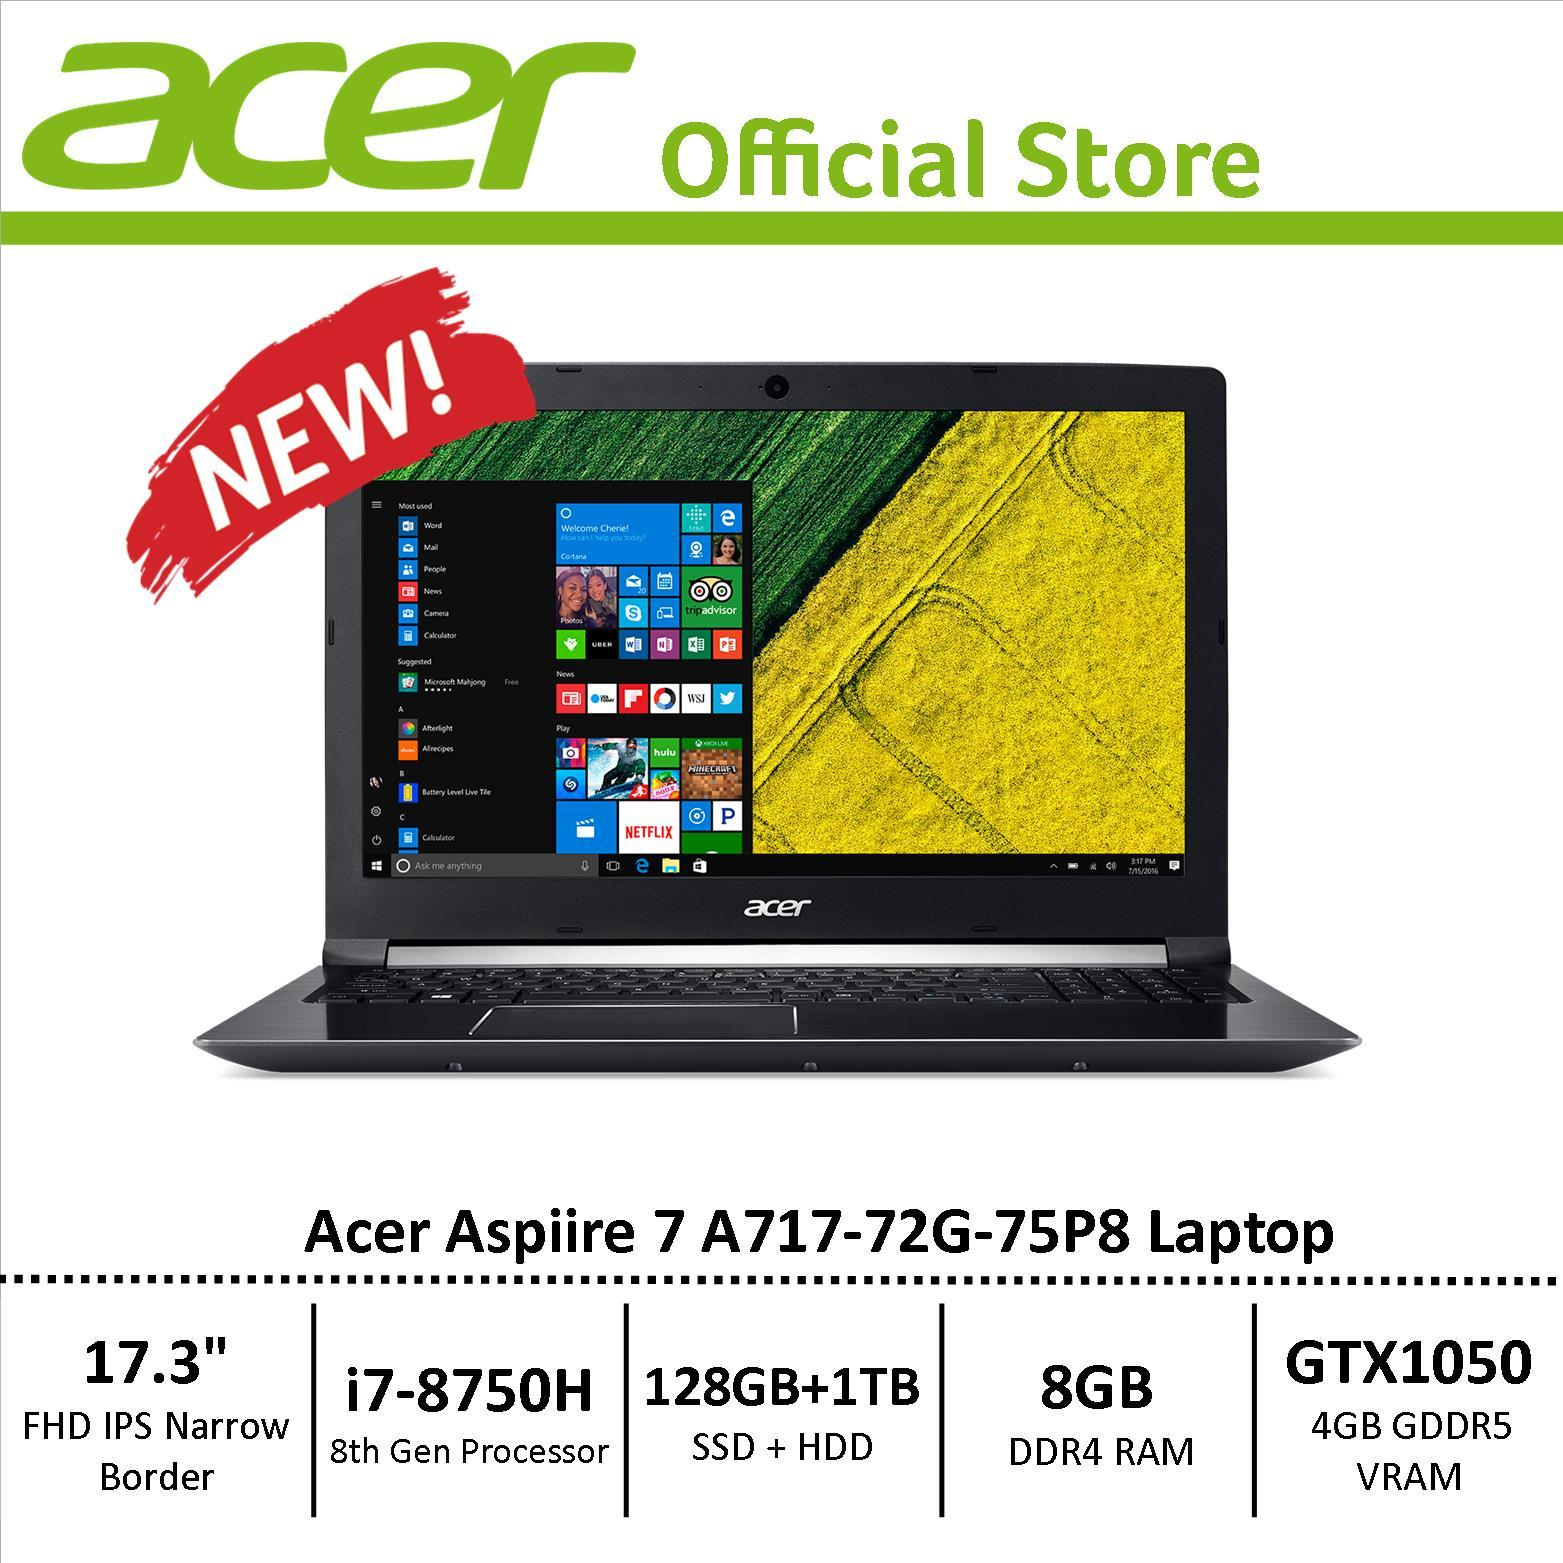 Acer Aspire 7 A717-72G-75P8 Performance Laptop – Free Gift with purchase